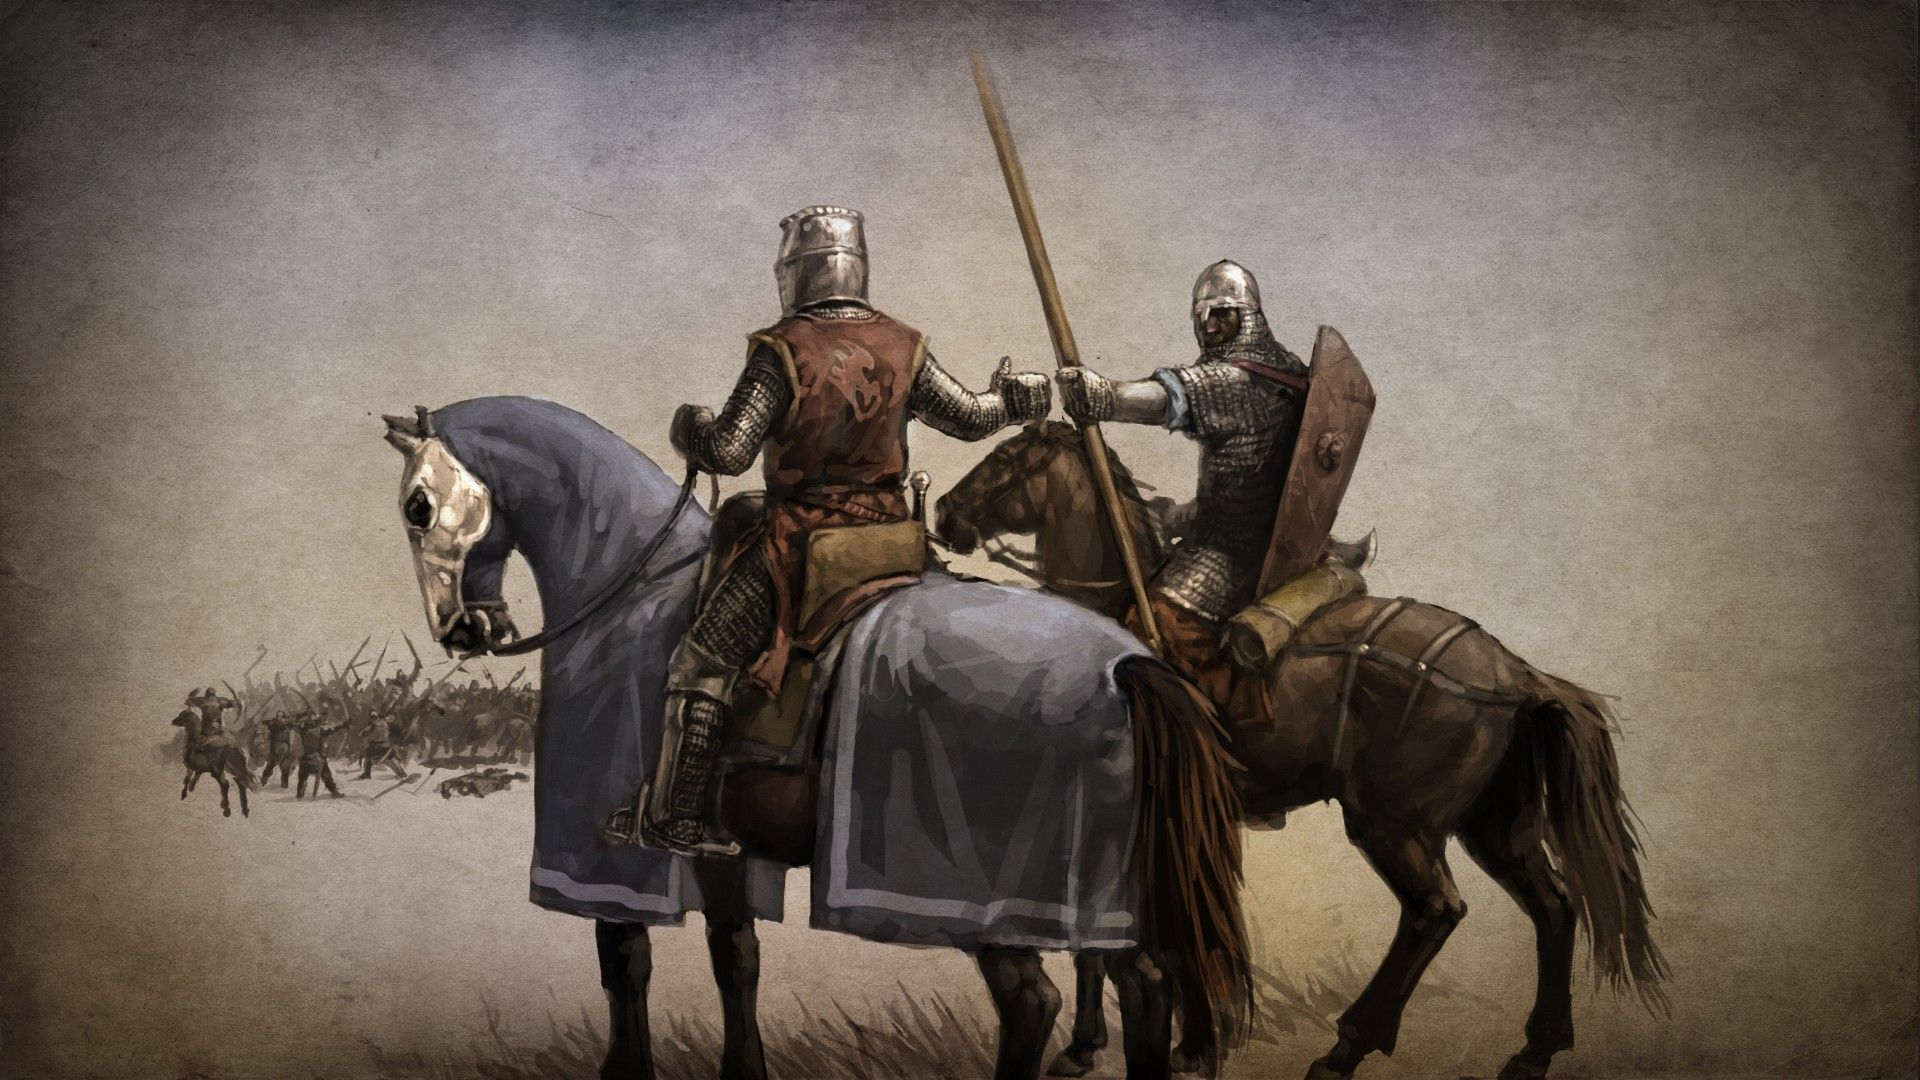 Mount And Blade Wallpaper Mount blade 1920x1080